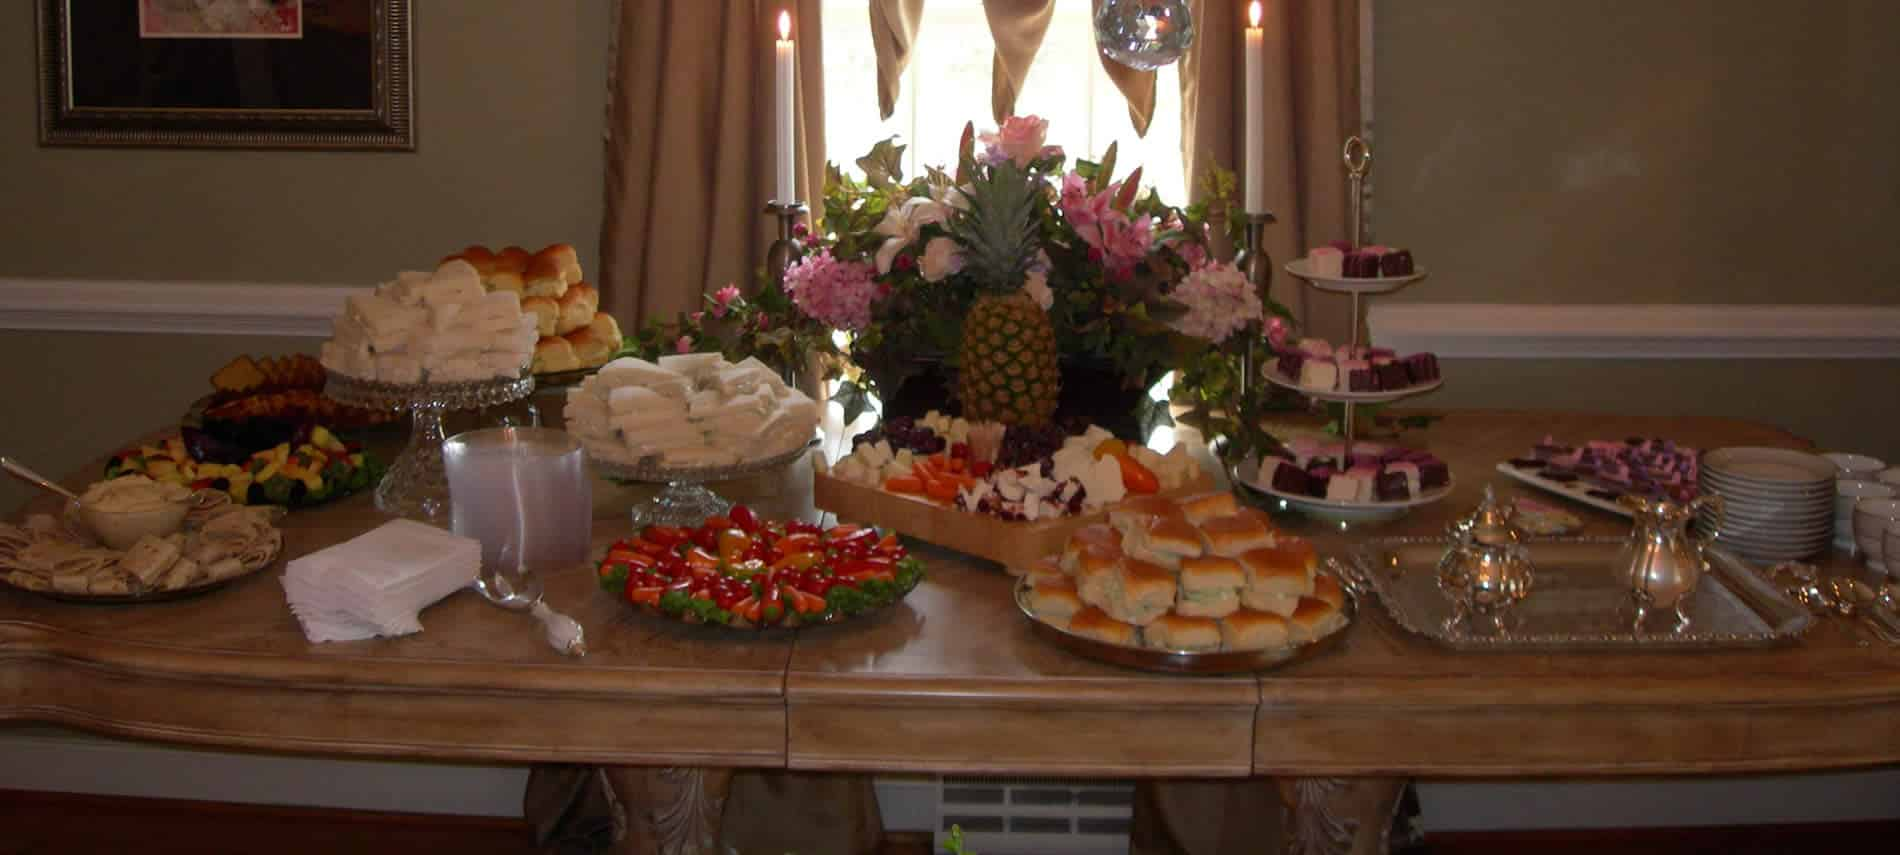 Table filled with trays of food including egg salad sandwiches petite fours on three tiered tray and flowers in front of window